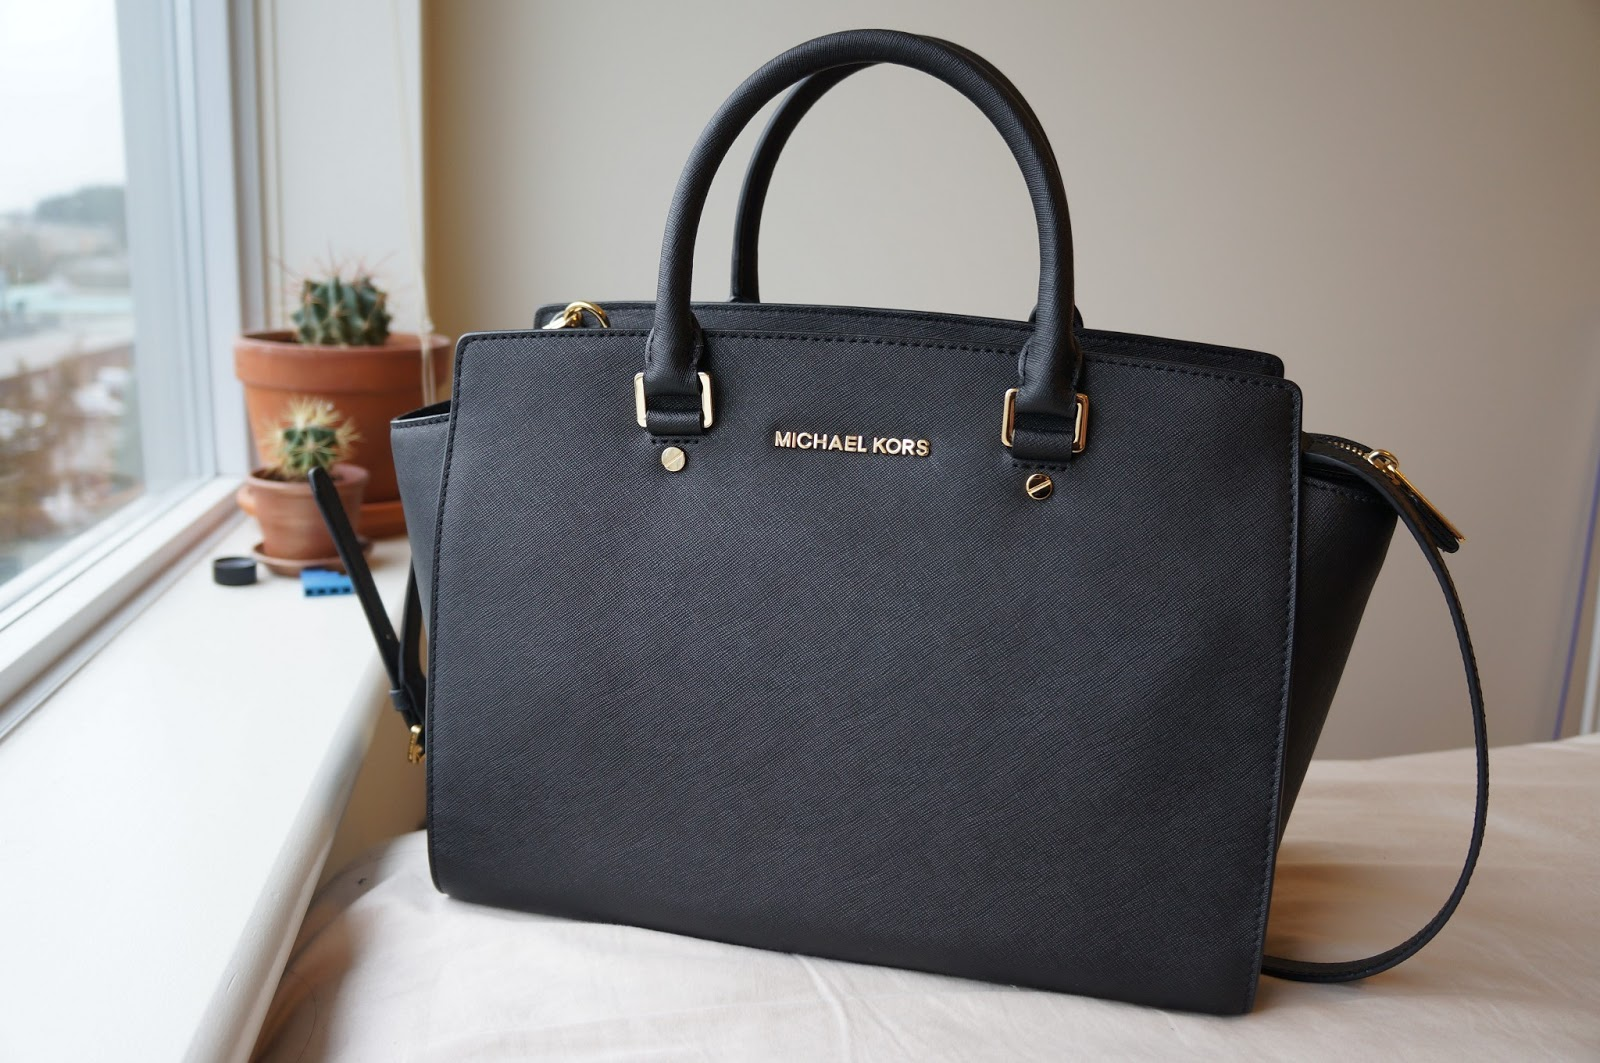 Michael Kors Selma Bag Preview